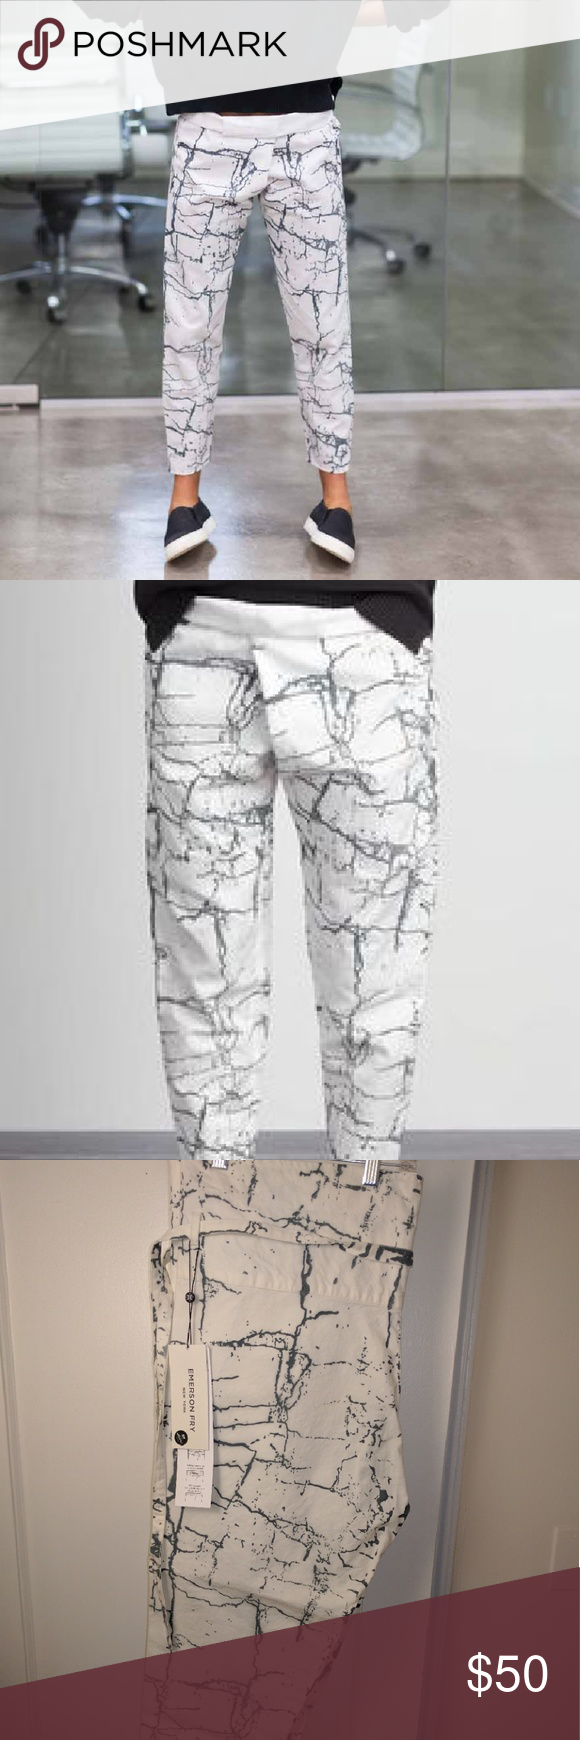 Emerson Fry Crackle print cotton pants Emerson Fry's cool foldover wrap pant in the white-black crackle print, dyed in India. Great for resort, spring, and summer. Ankle length, 24-inch inseam.  Will fit size 6-8.  New with tags. Emerson Fry Pants Ankle & Cropped #emersonfry